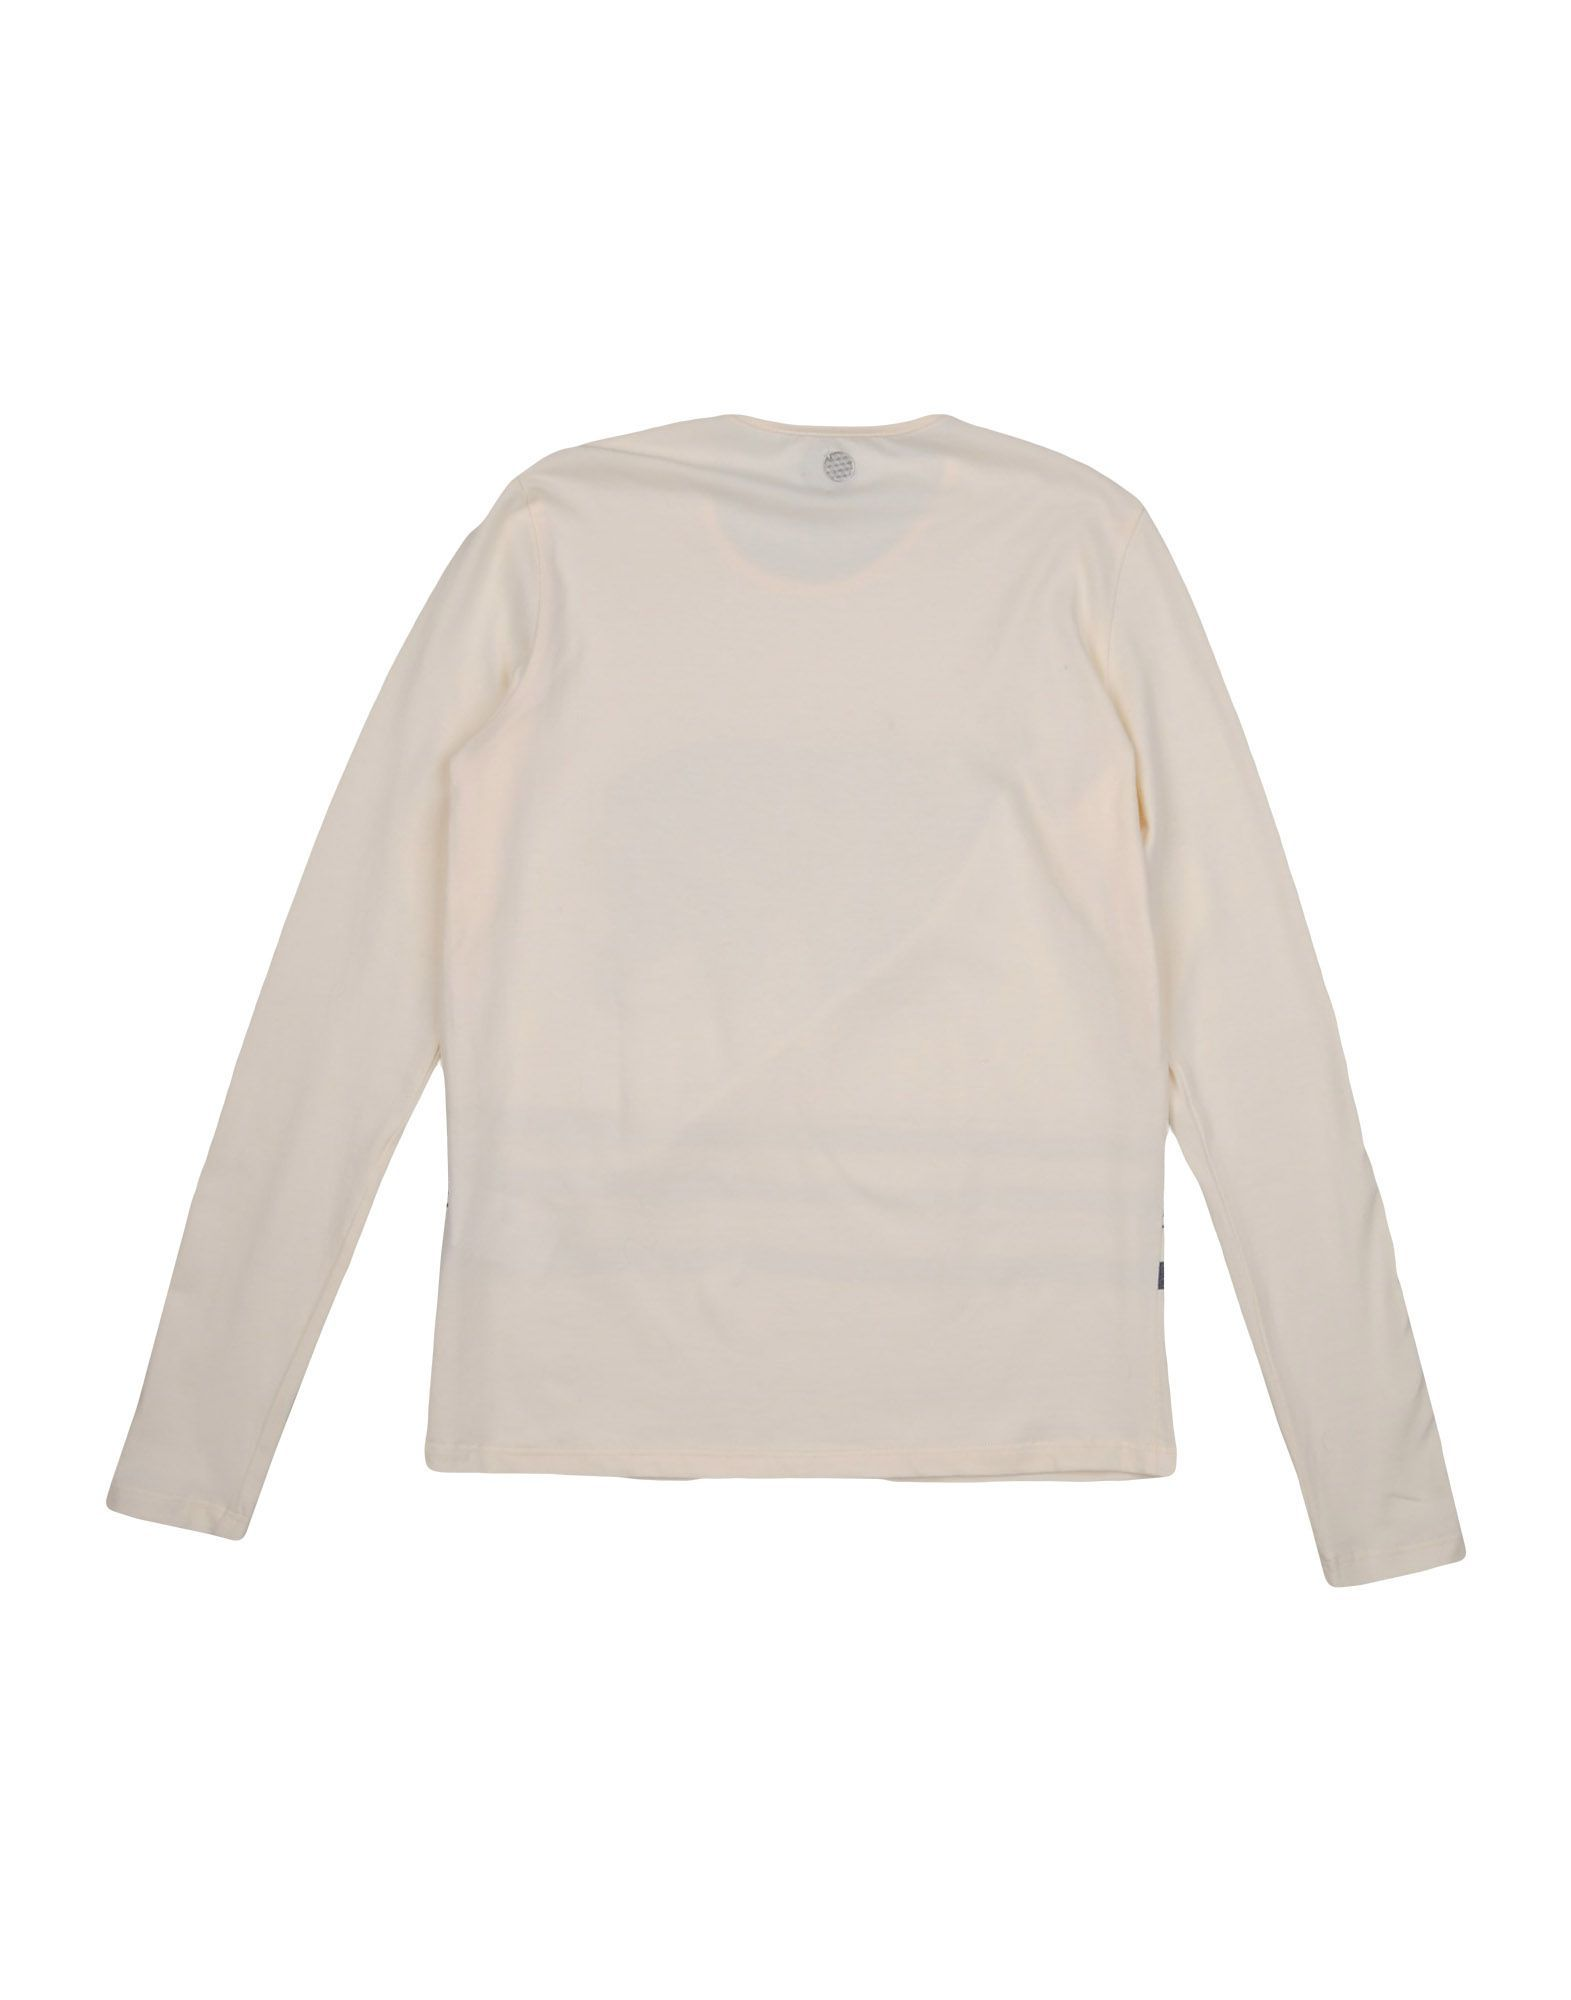 TOPWEAR Parrot Ivory Girl Cotton